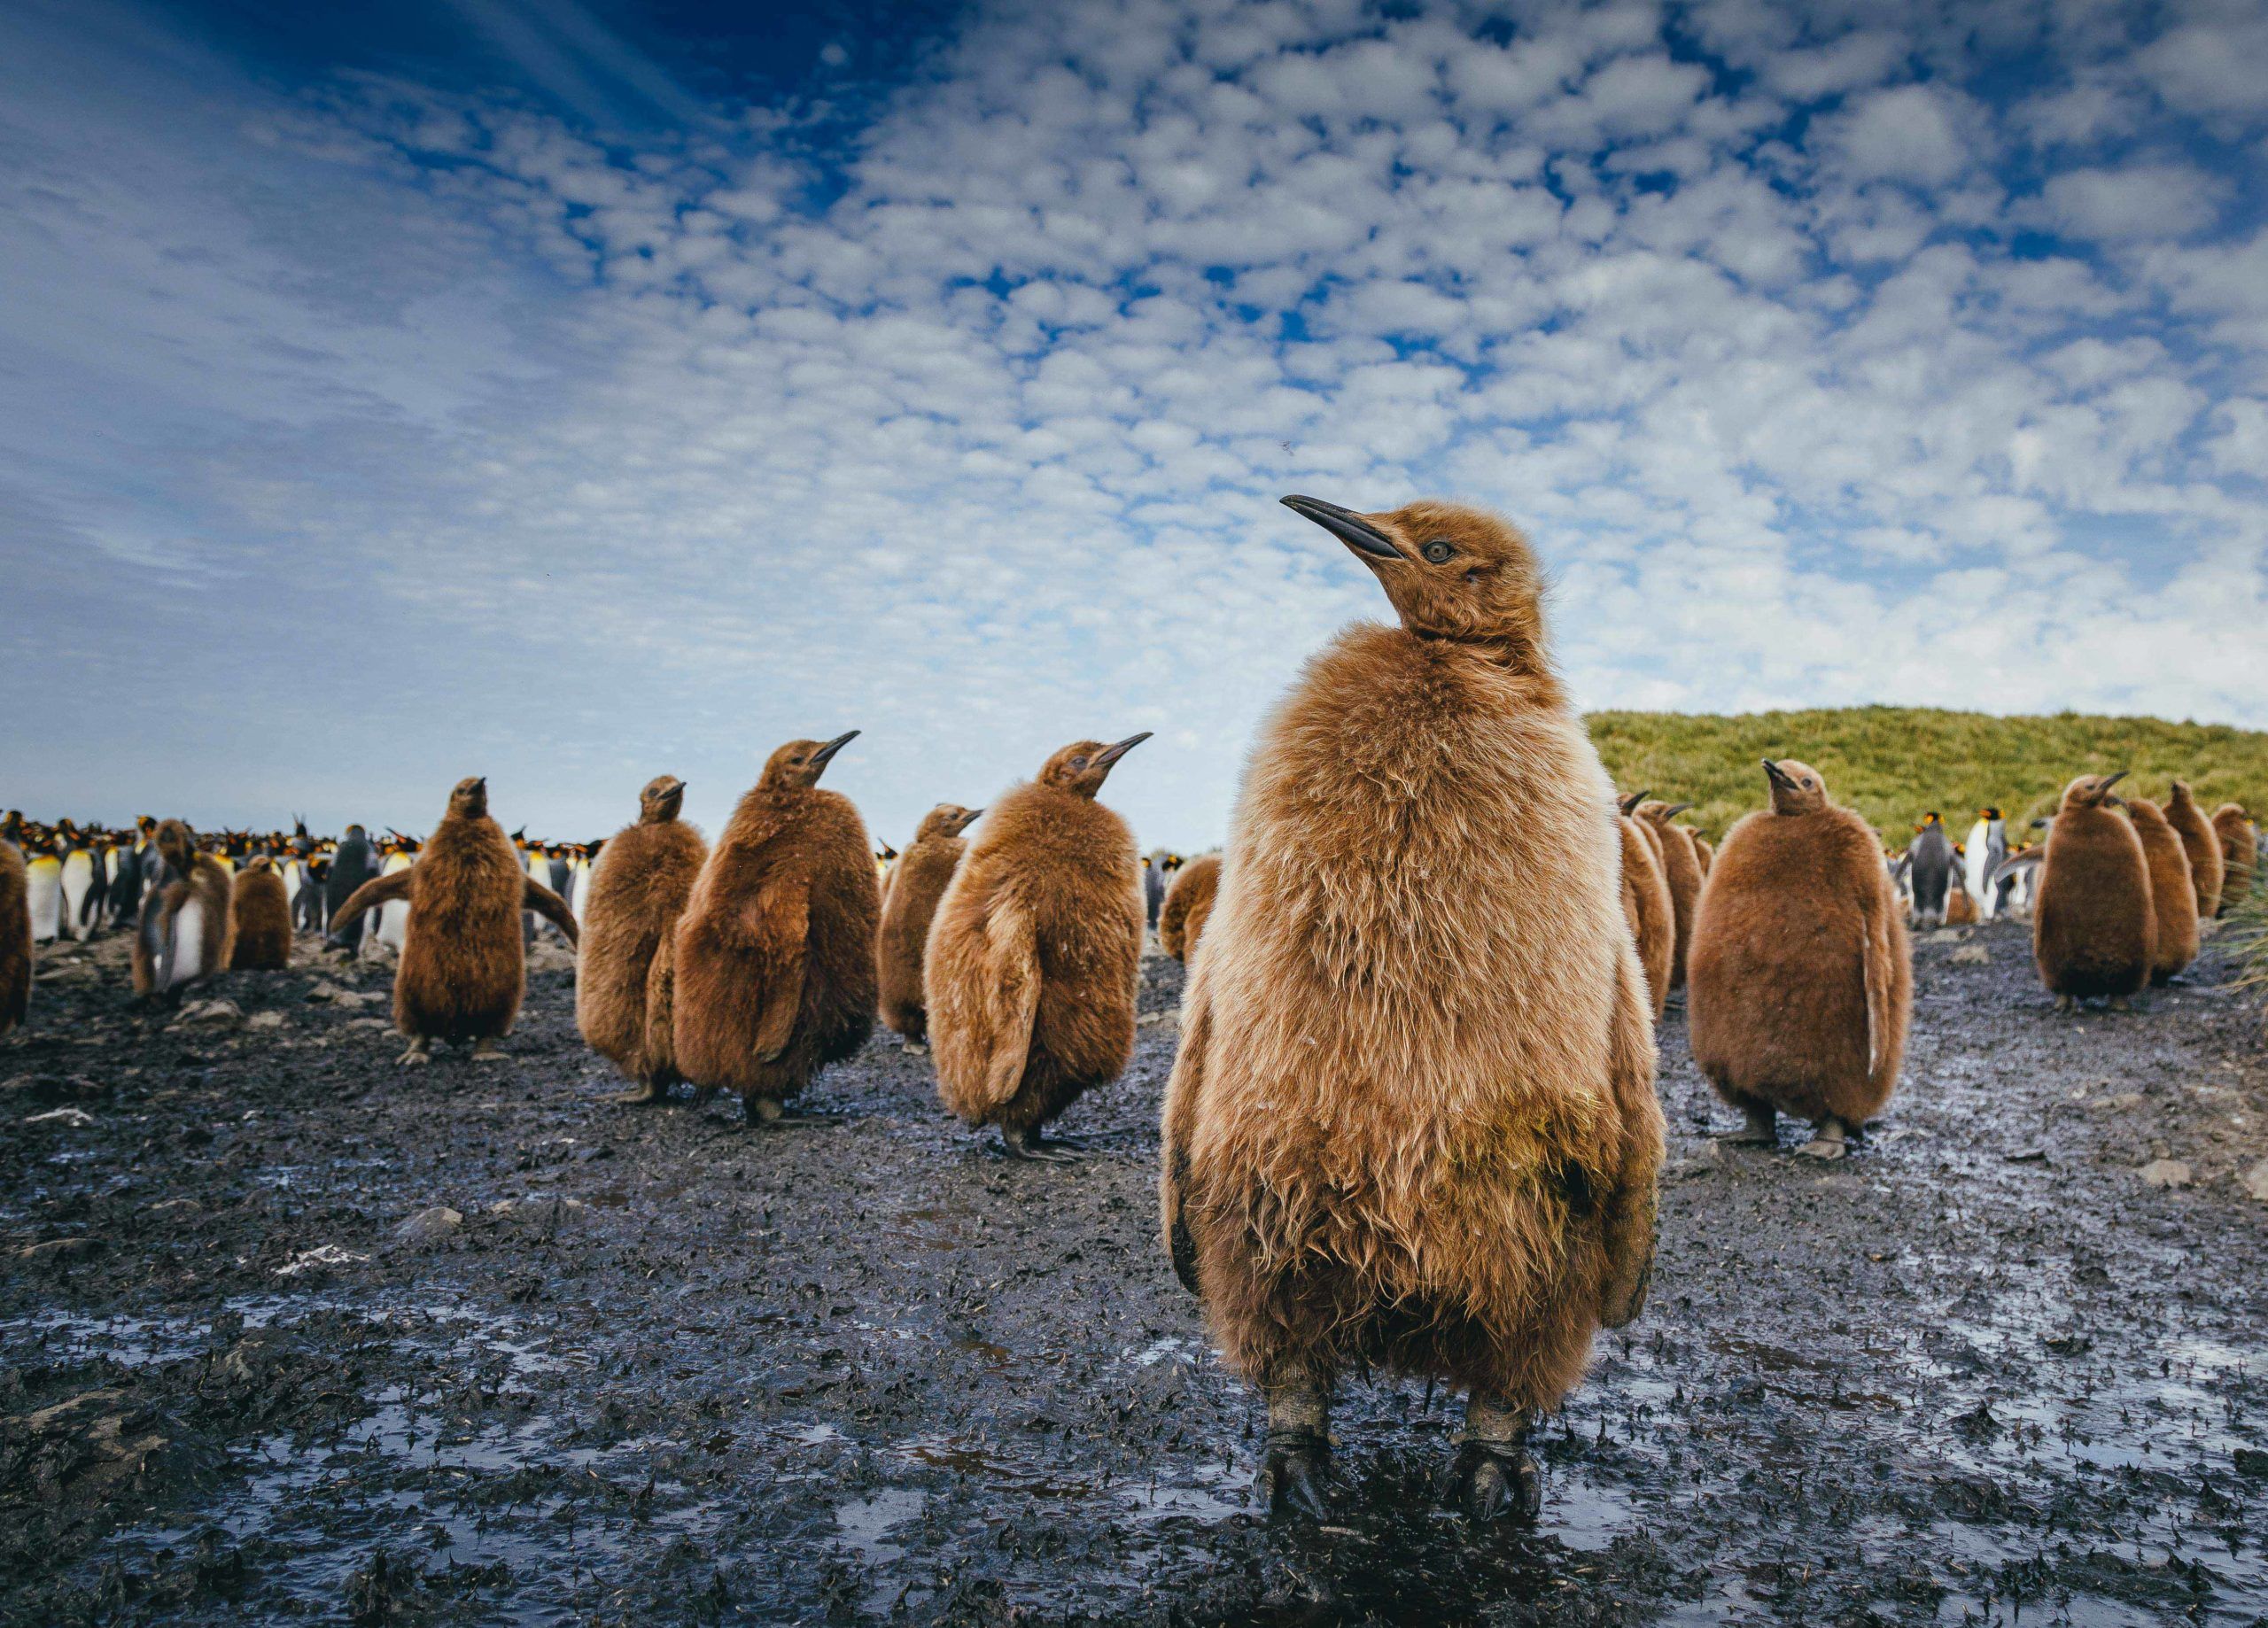 spaced out colony of brown fluffy King penguin chicks standing curiously in the mud